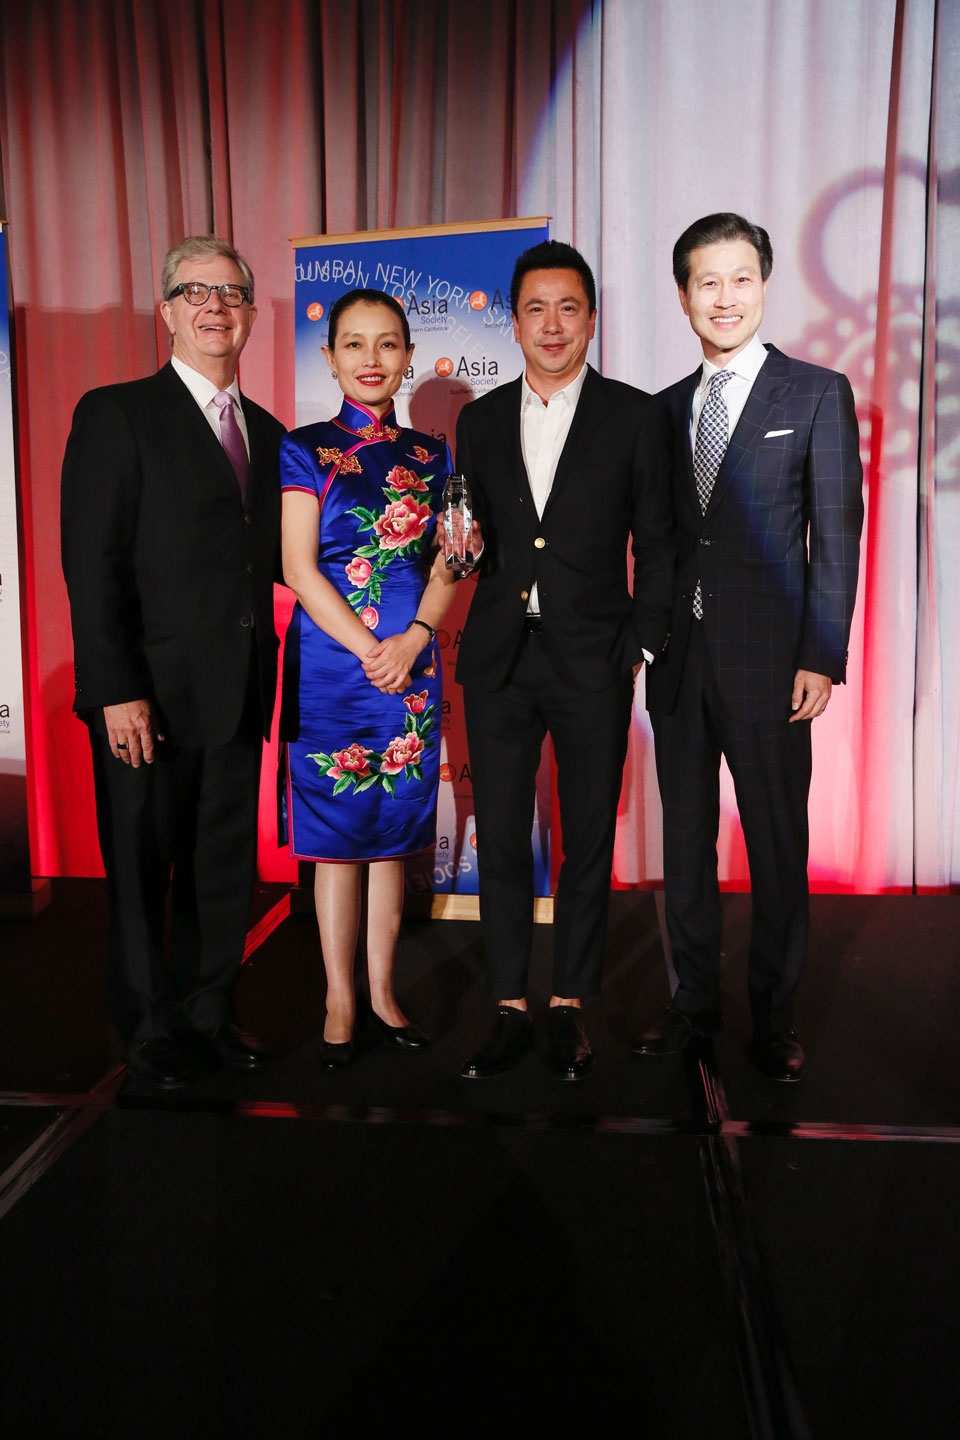 From left, Thomas McLain, Chairman Asia Society Southern California, Wang Jin, Chinese Cultural Attache at Consulate, James Wang, Co-Founder, Vice Chairman and CEO Huayi Brothers Media Corporation and Dominic Ng, East West Bank pose during the 2016 U.S.-China Film Gala Dinner held at the Millennium Biltmore Hotel on Wednesday, November 2, 2016, in Los Angeles, California.